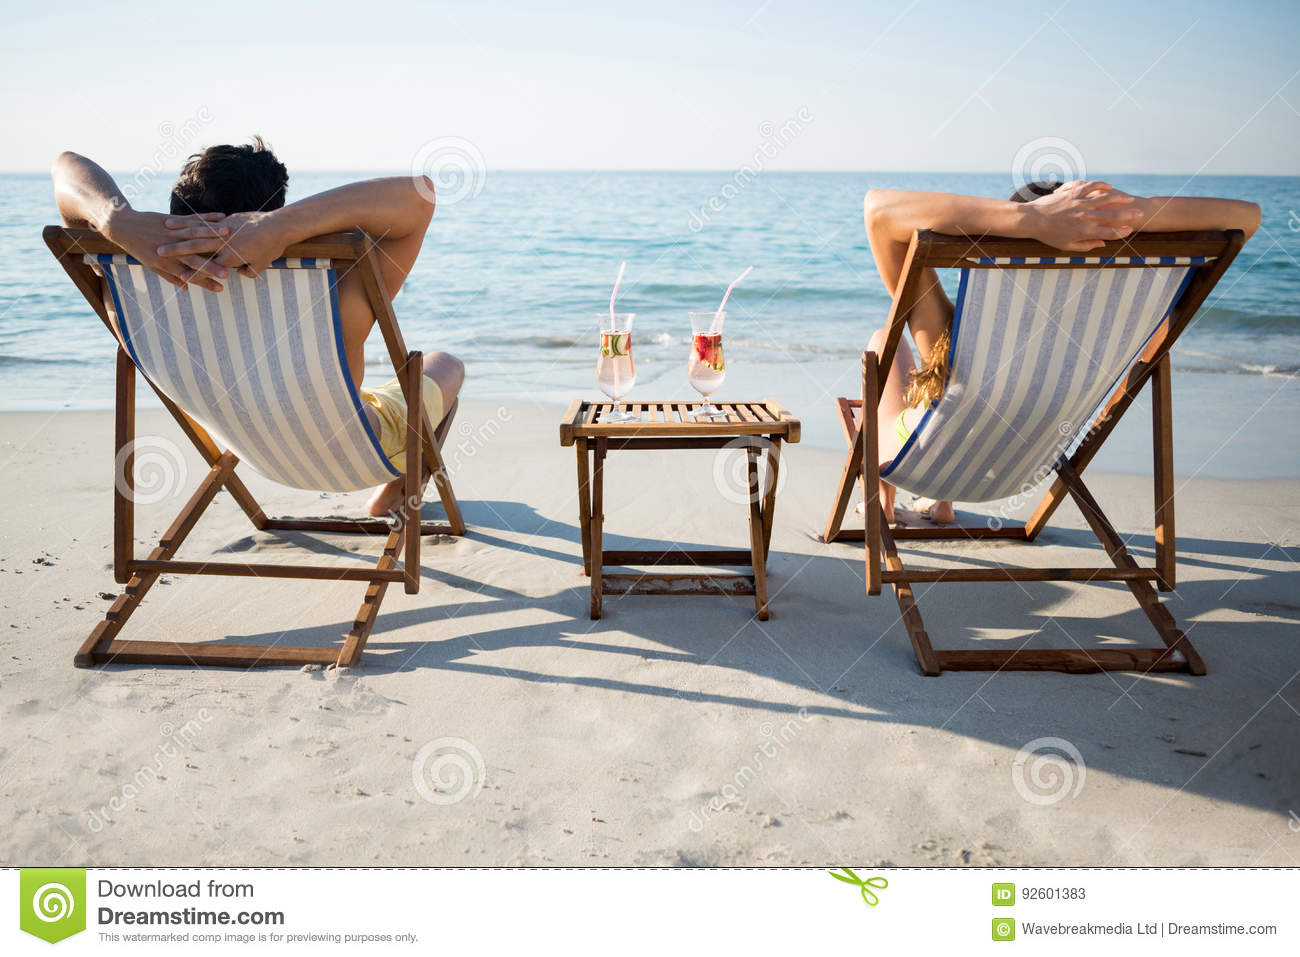 couple relaxing on lounge chairs at beach stock photo - Beach Lounge Chairs